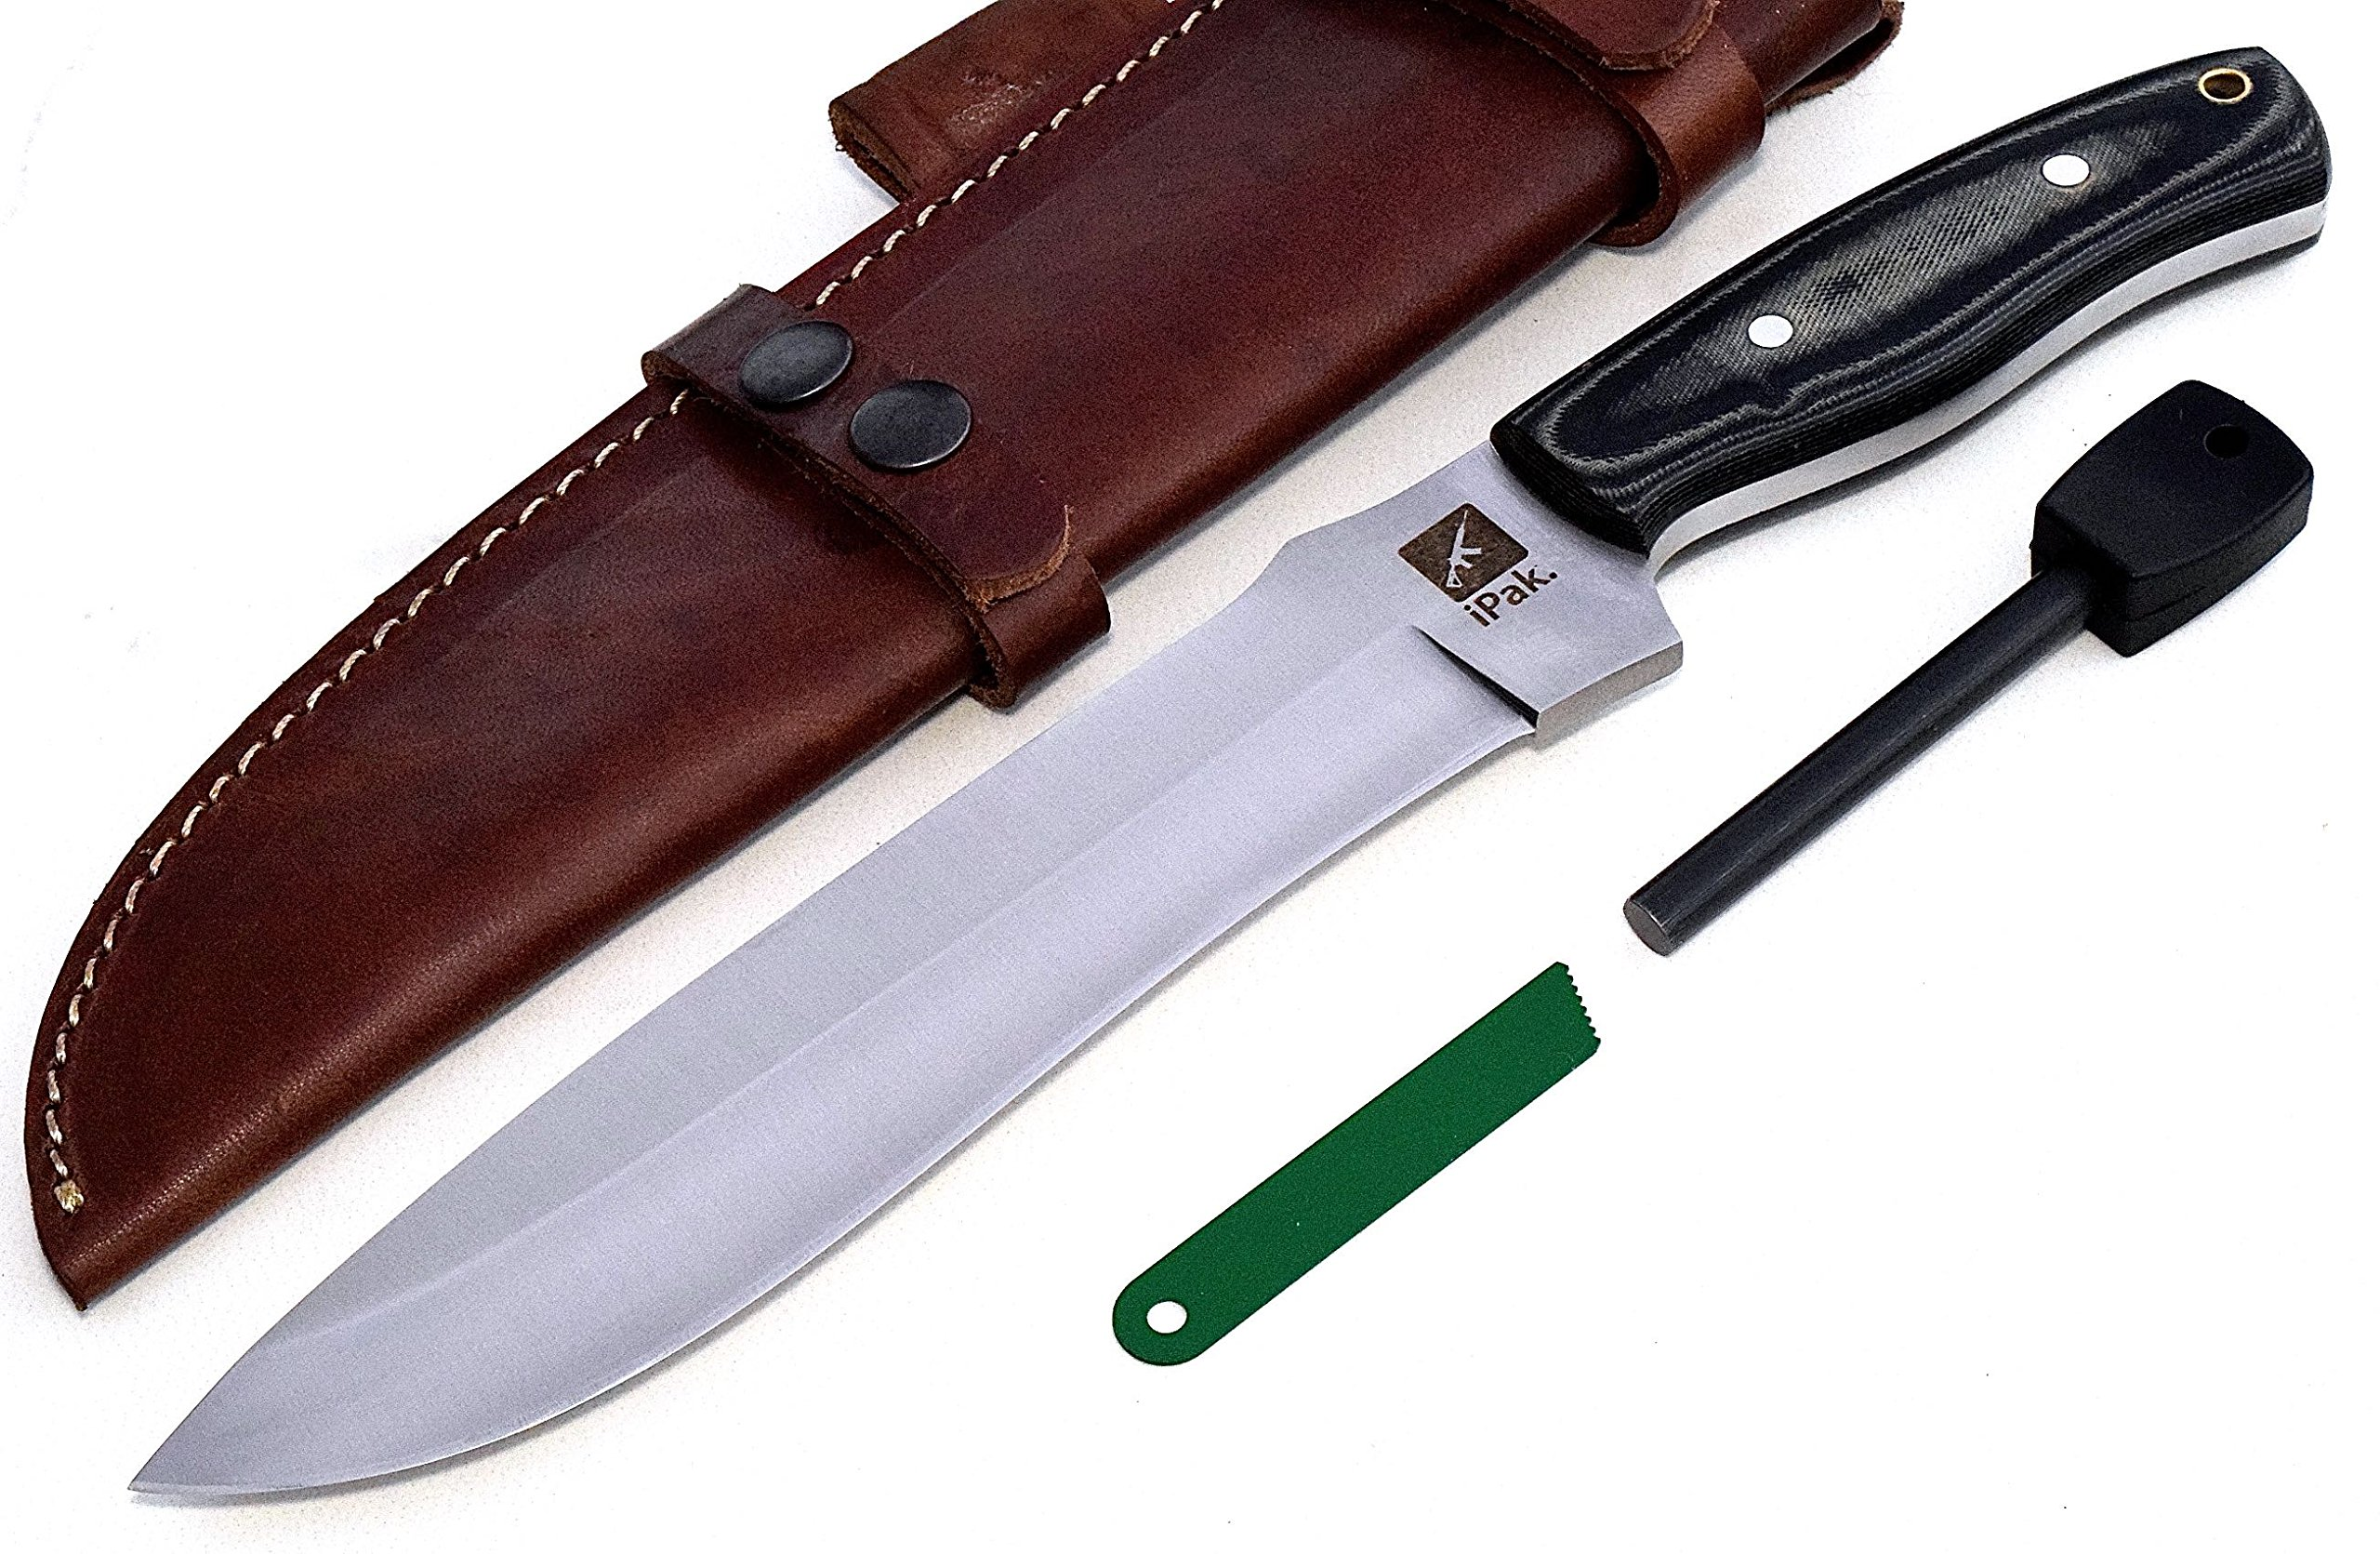 CFK USA IPAK Custom Handmade D2 Tool Steel Micarta Large Bowie Camping Hunting Bushcraft Hunter Knife with Horizontal Leather Sheath & Fire Starter Set CFK177